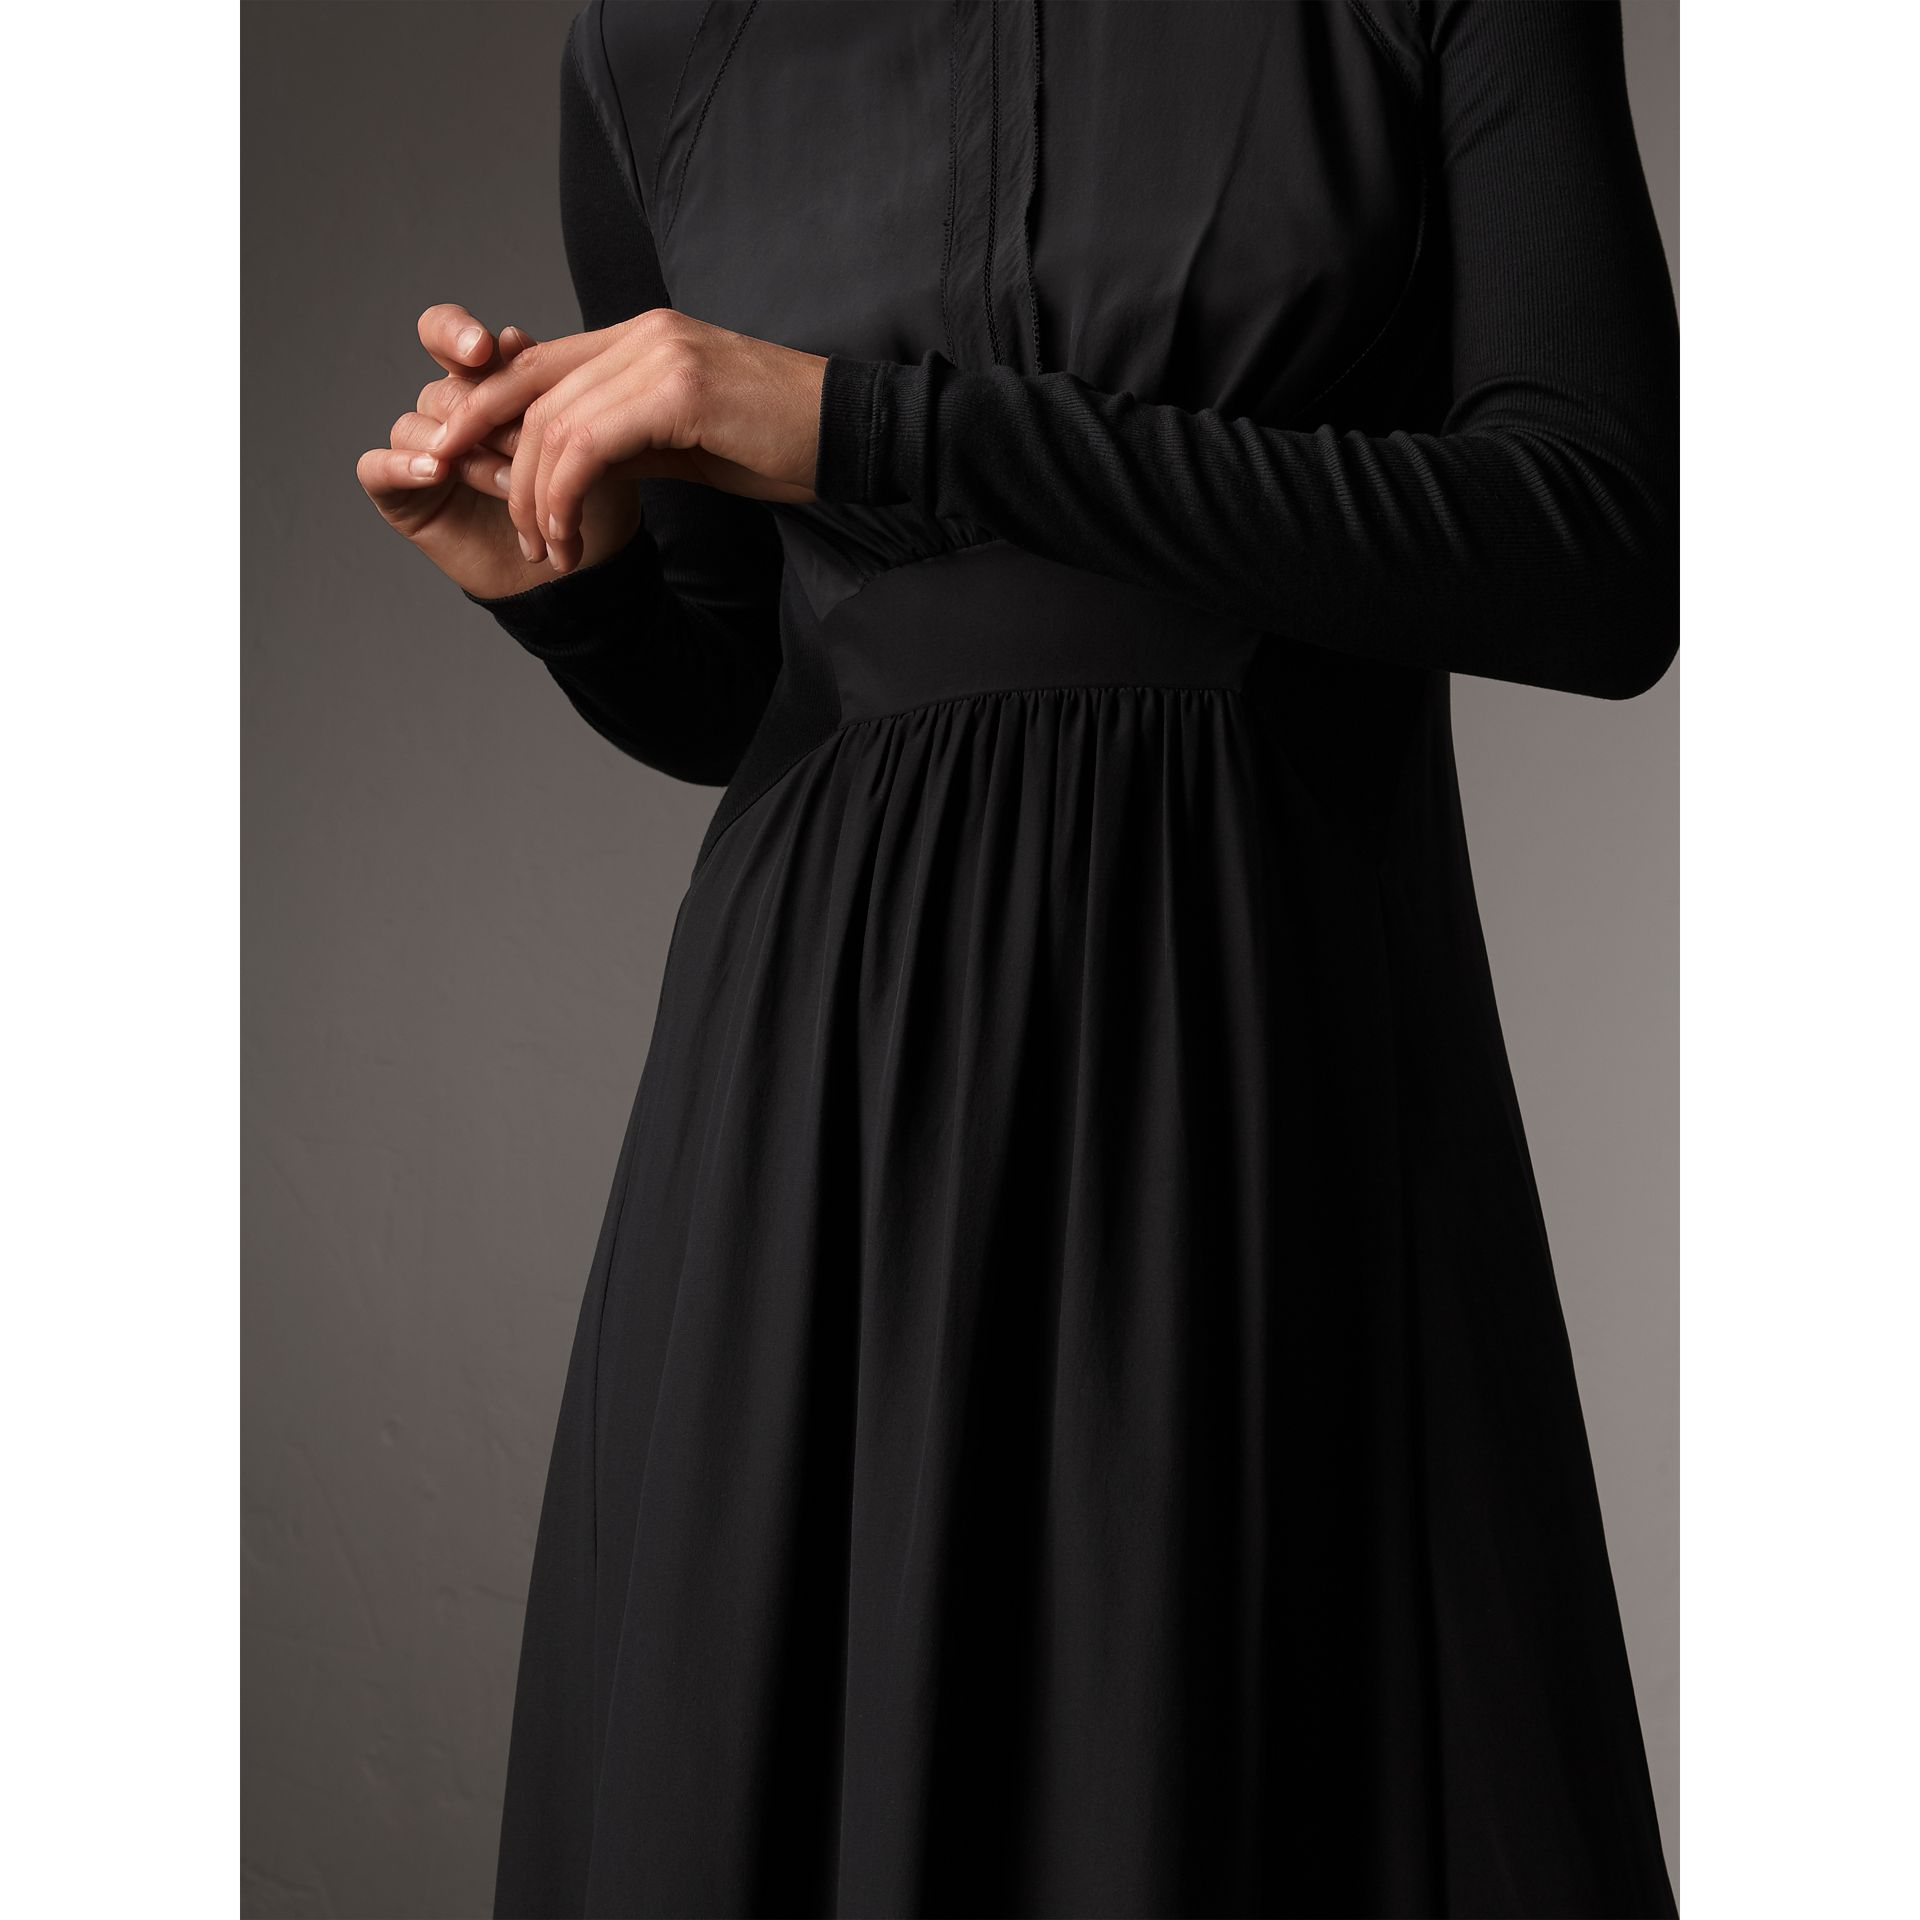 Silk Floor-length Gathered Dress in Black - Women | Burberry United Kingdom - gallery image 2